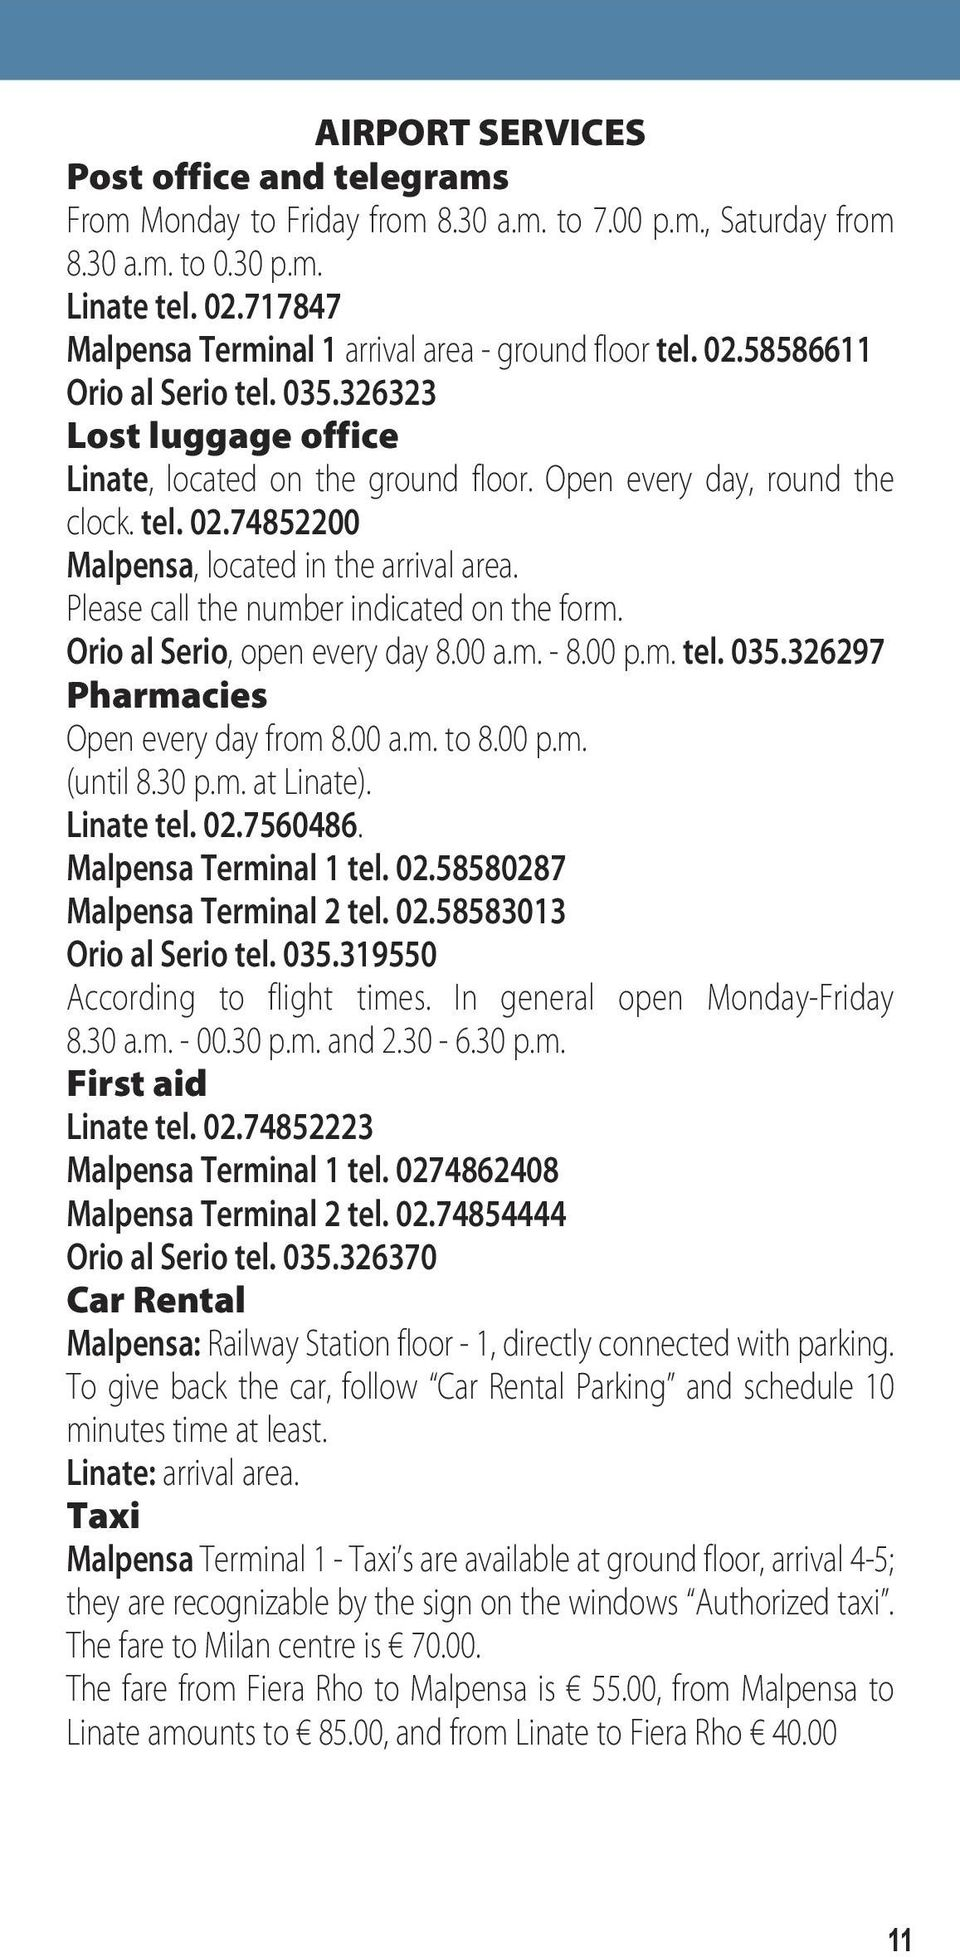 Please call the number indicated on the form. Orio al Serio, open every day 8.00 a.m. - 8.00 p.m. tel. 035.326297 Pharmacies Open every day from 8.00 a.m. to 8.00 p.m. (until 8.30 p.m. at Linate).